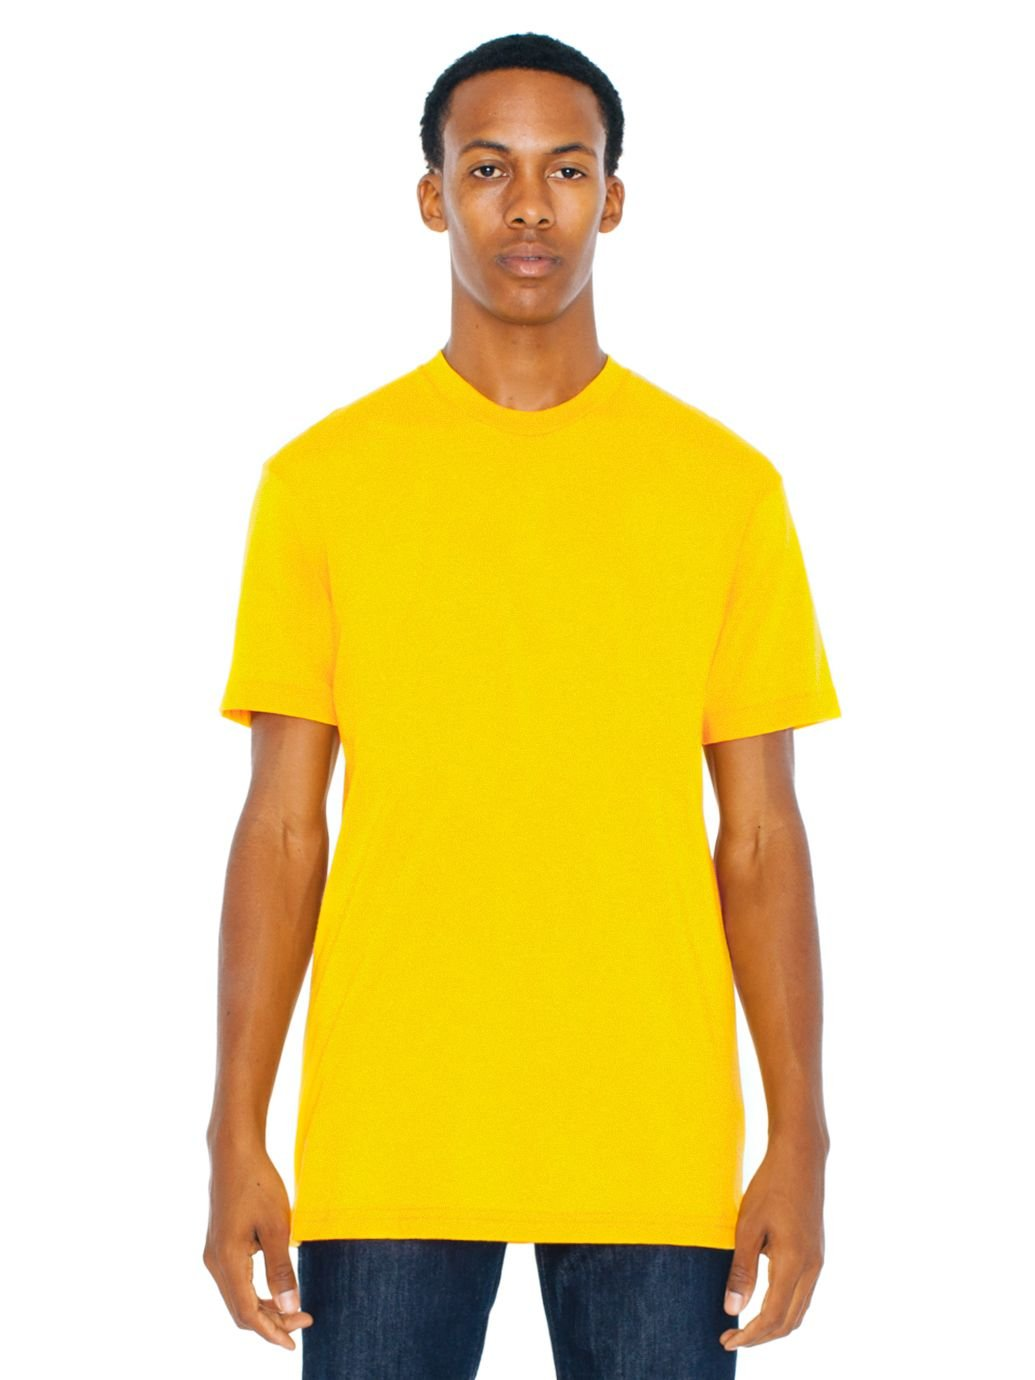 American Apparel Poly-Cotton Short Sleeve Crew Neck, Gold, X-Large